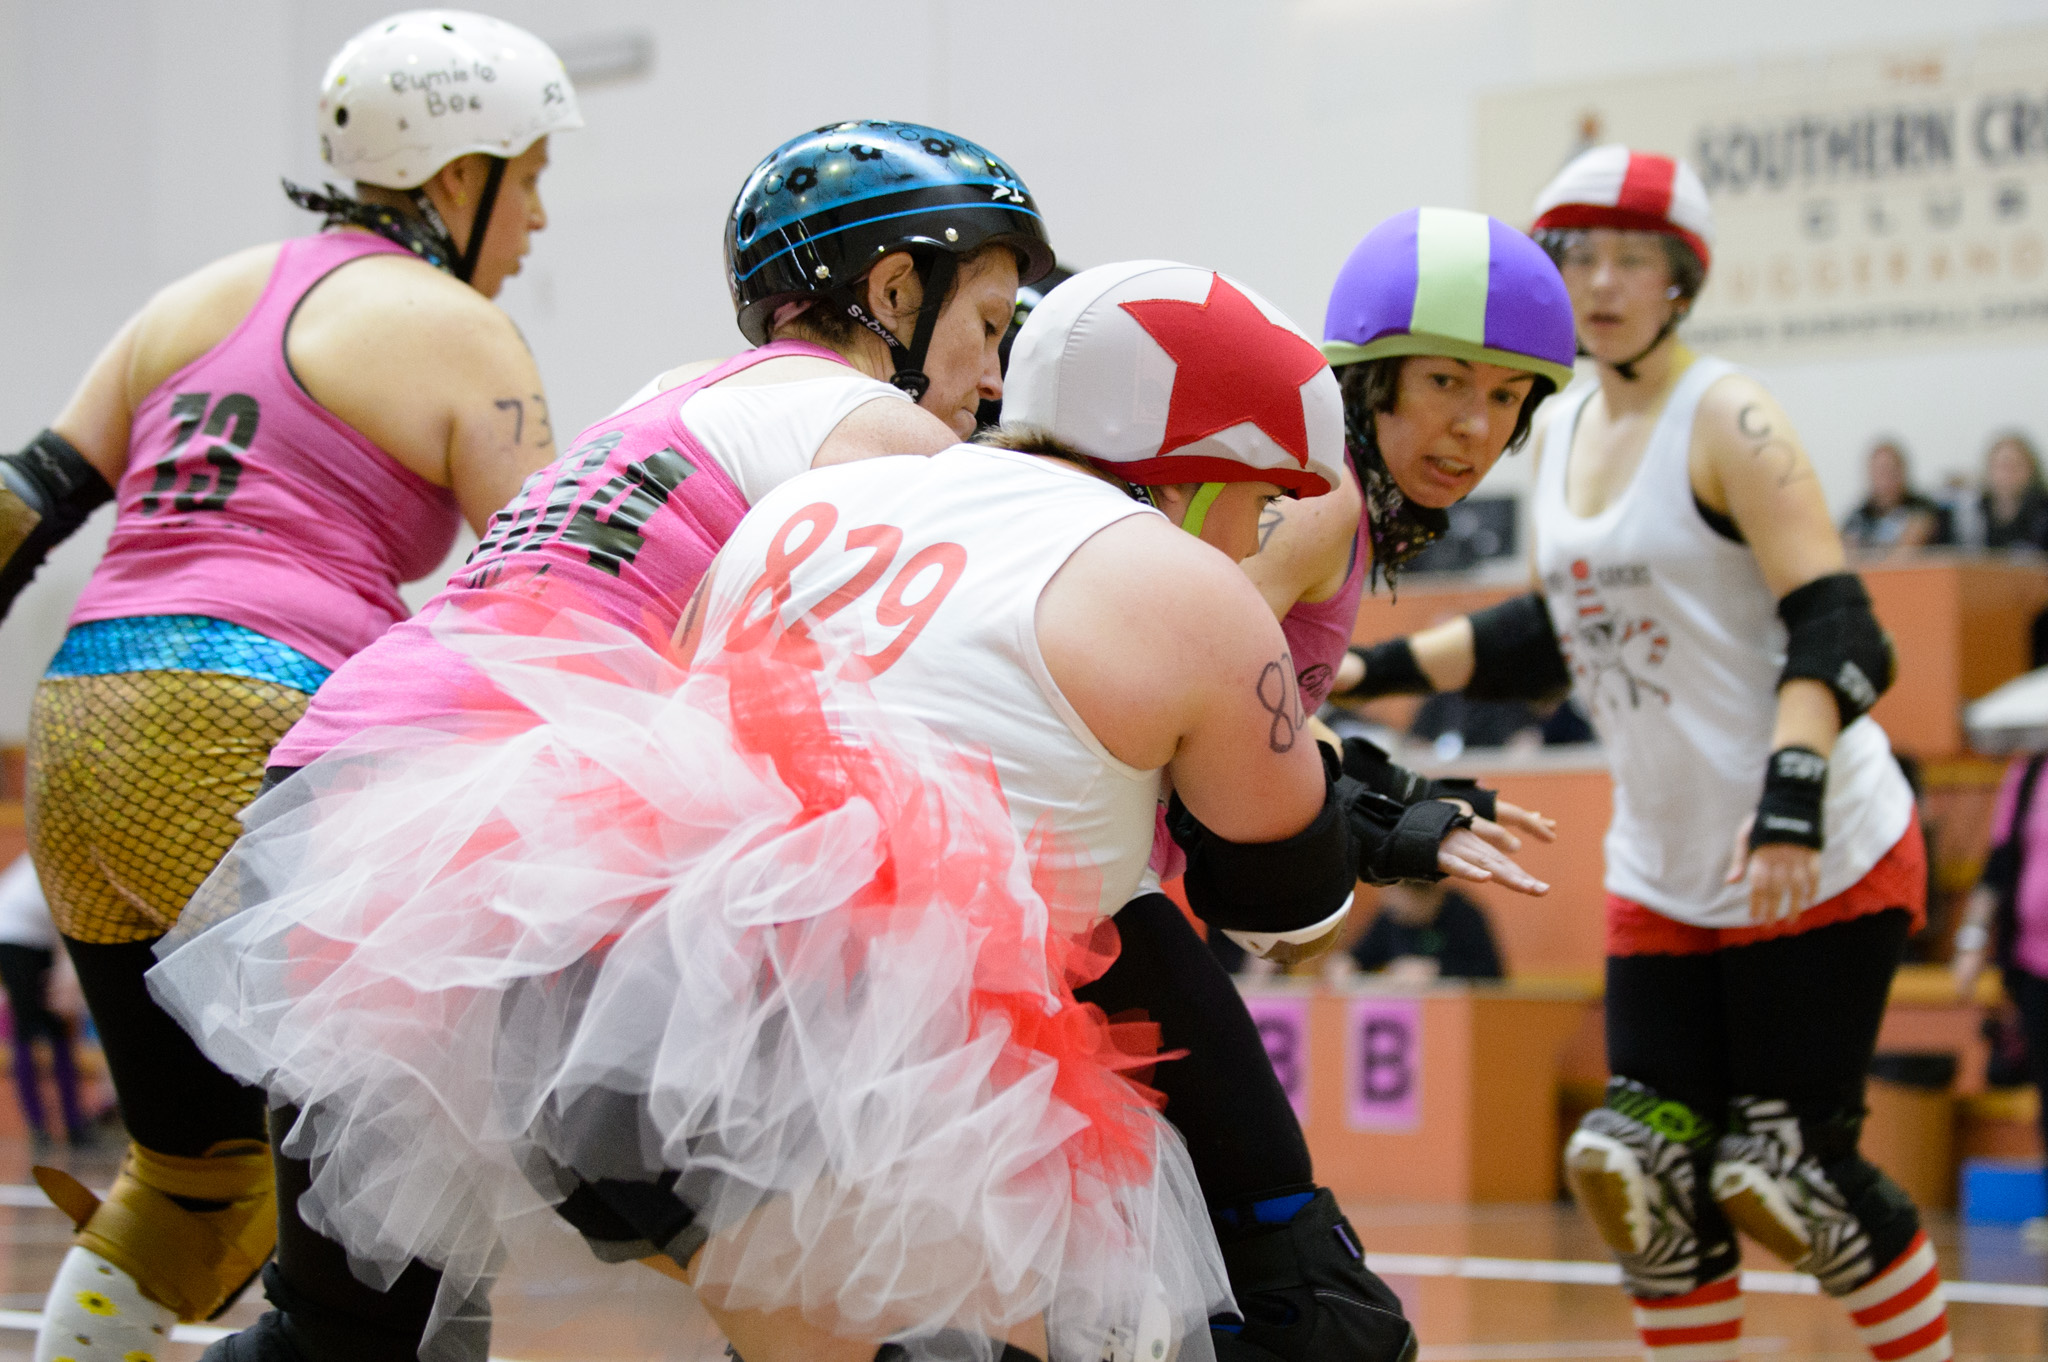 Candy Caners v Cherry Cola Rollers. Photographer: Brett Sargeant, D-eye Photography